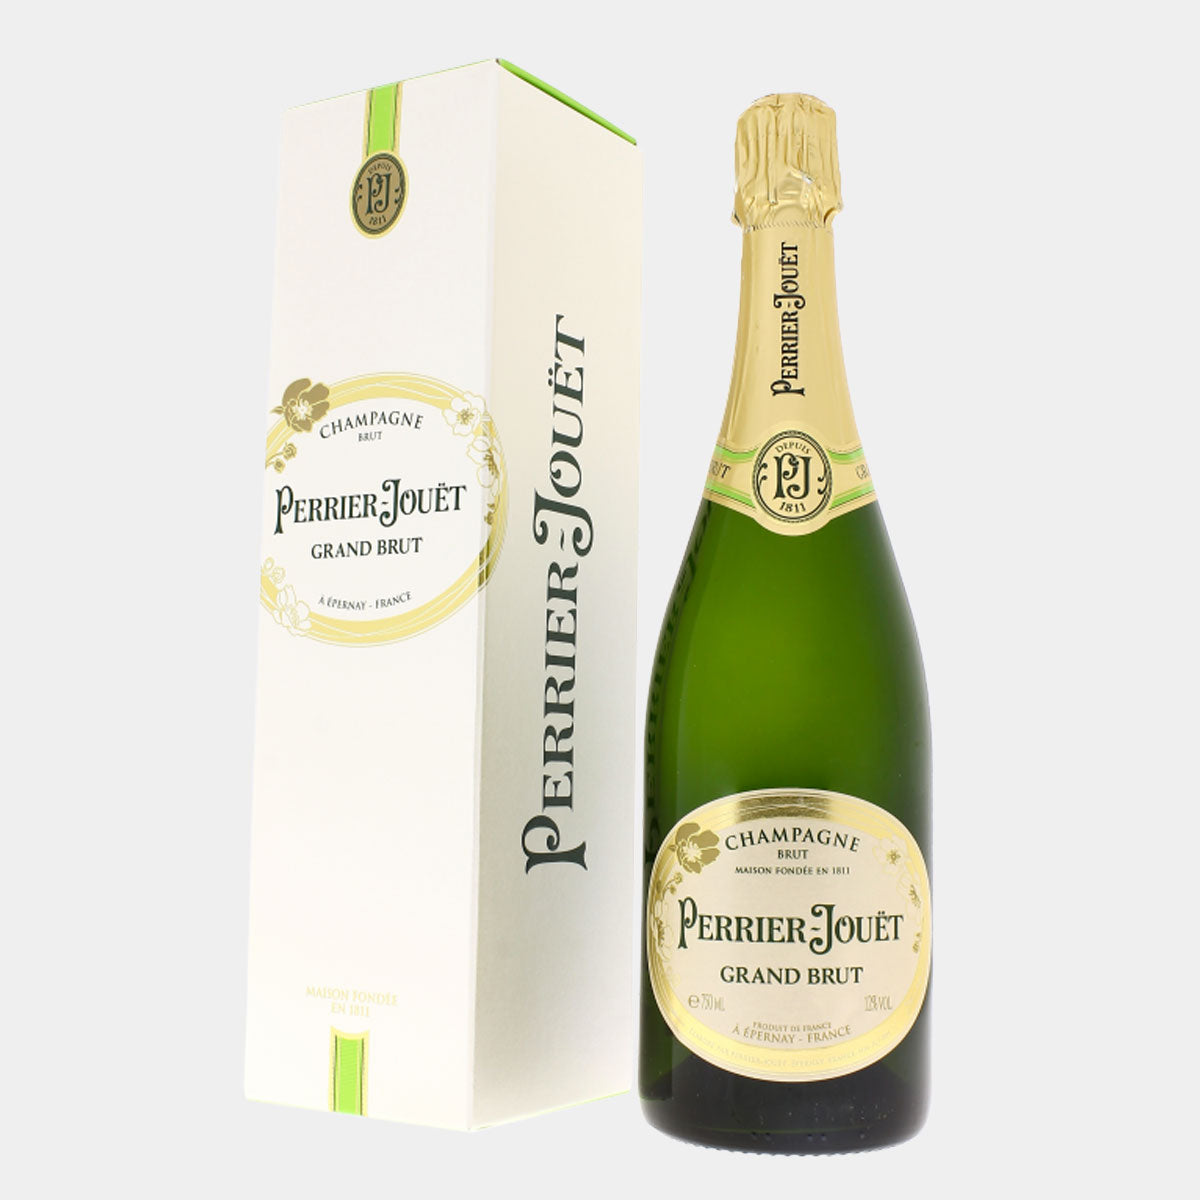 Perrier Jouet Champagne Grand Brut - Wines and Copas Barcelona